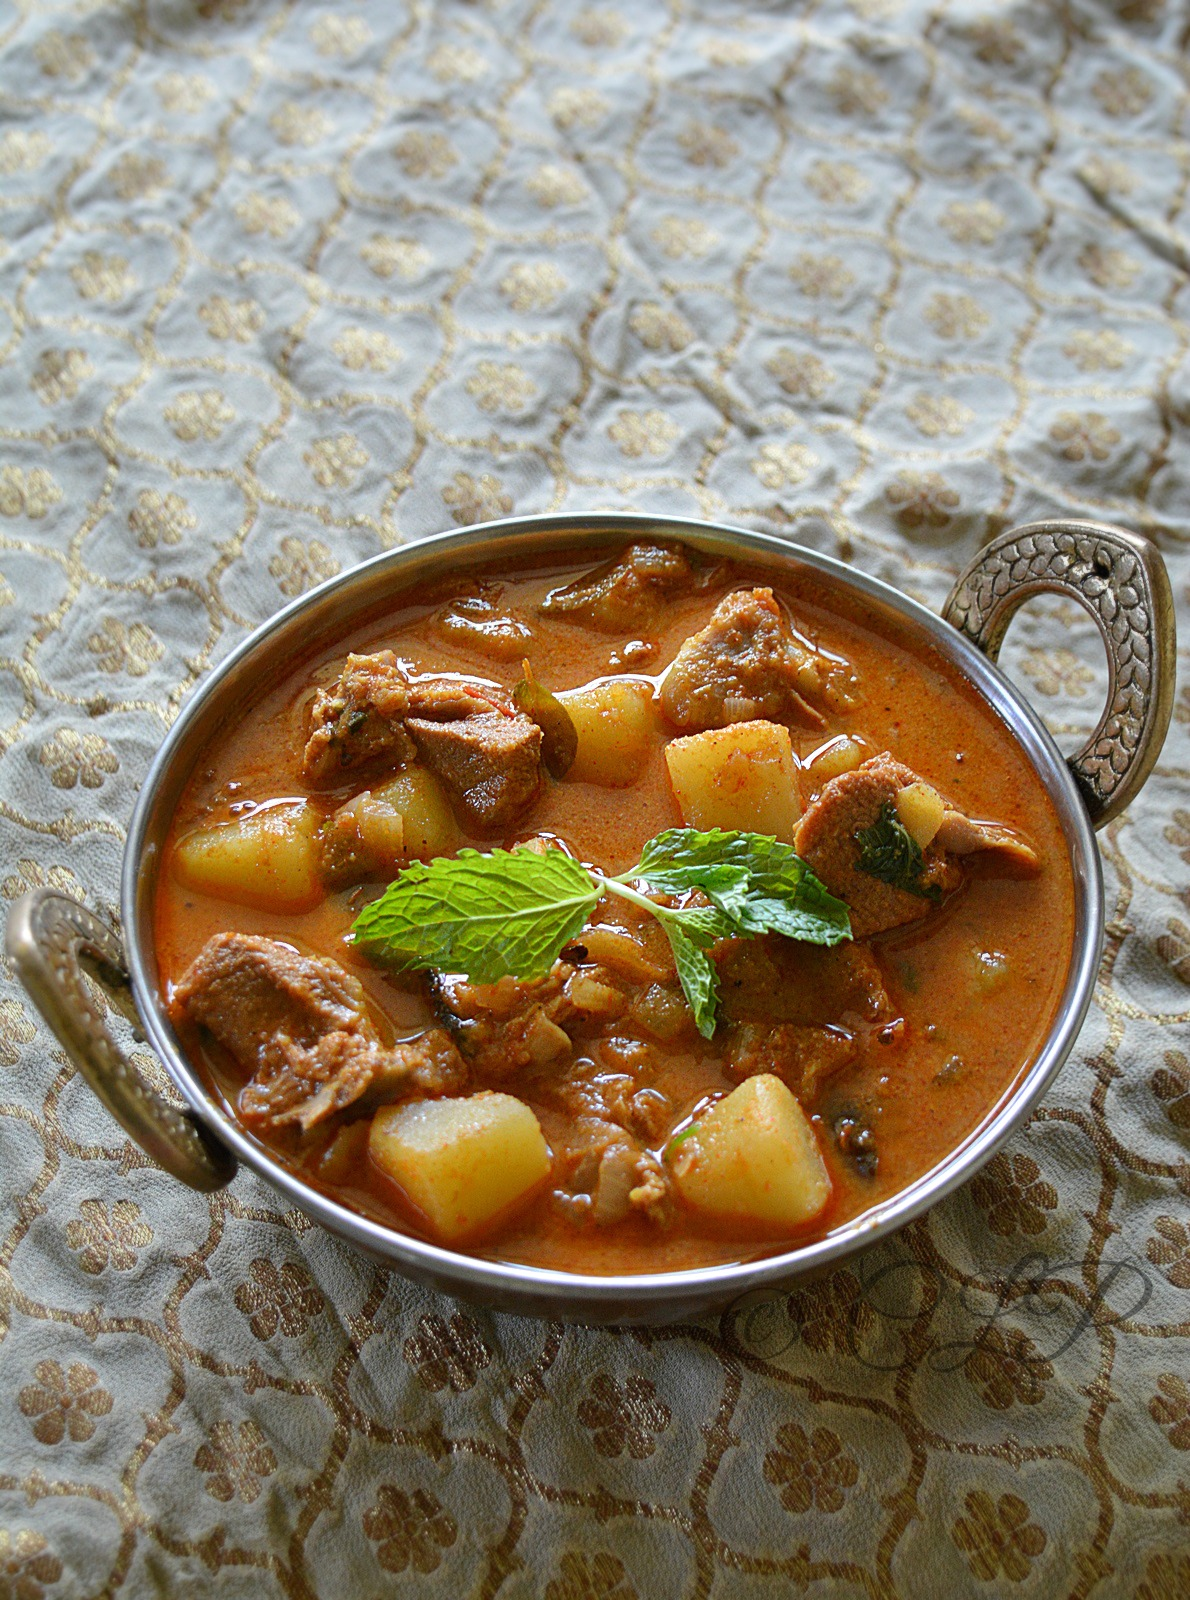 Mutton curry using coconut milk